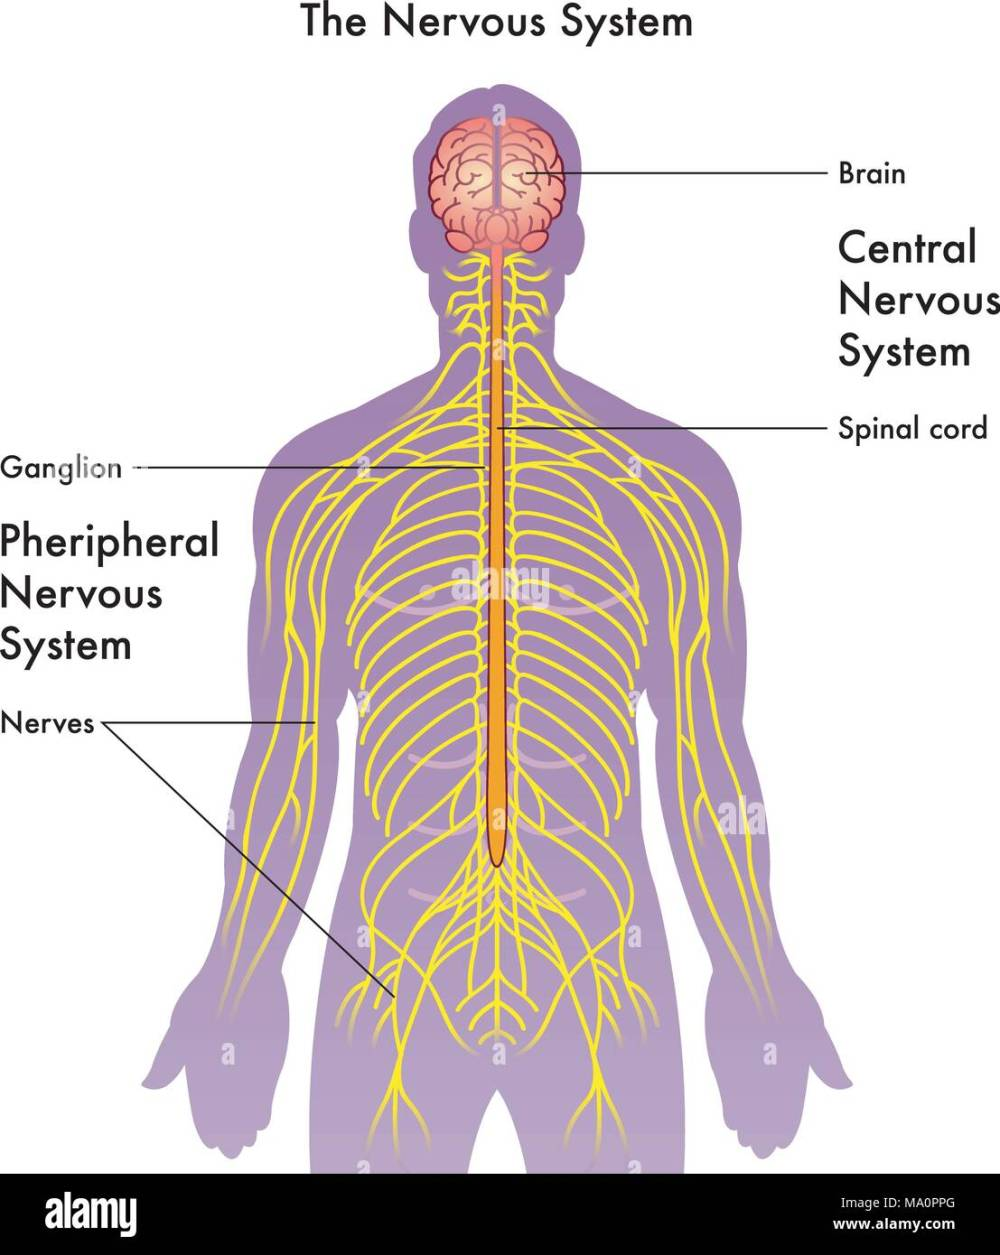 medium resolution of vector medical illustration of the nervous system on a white background stock image